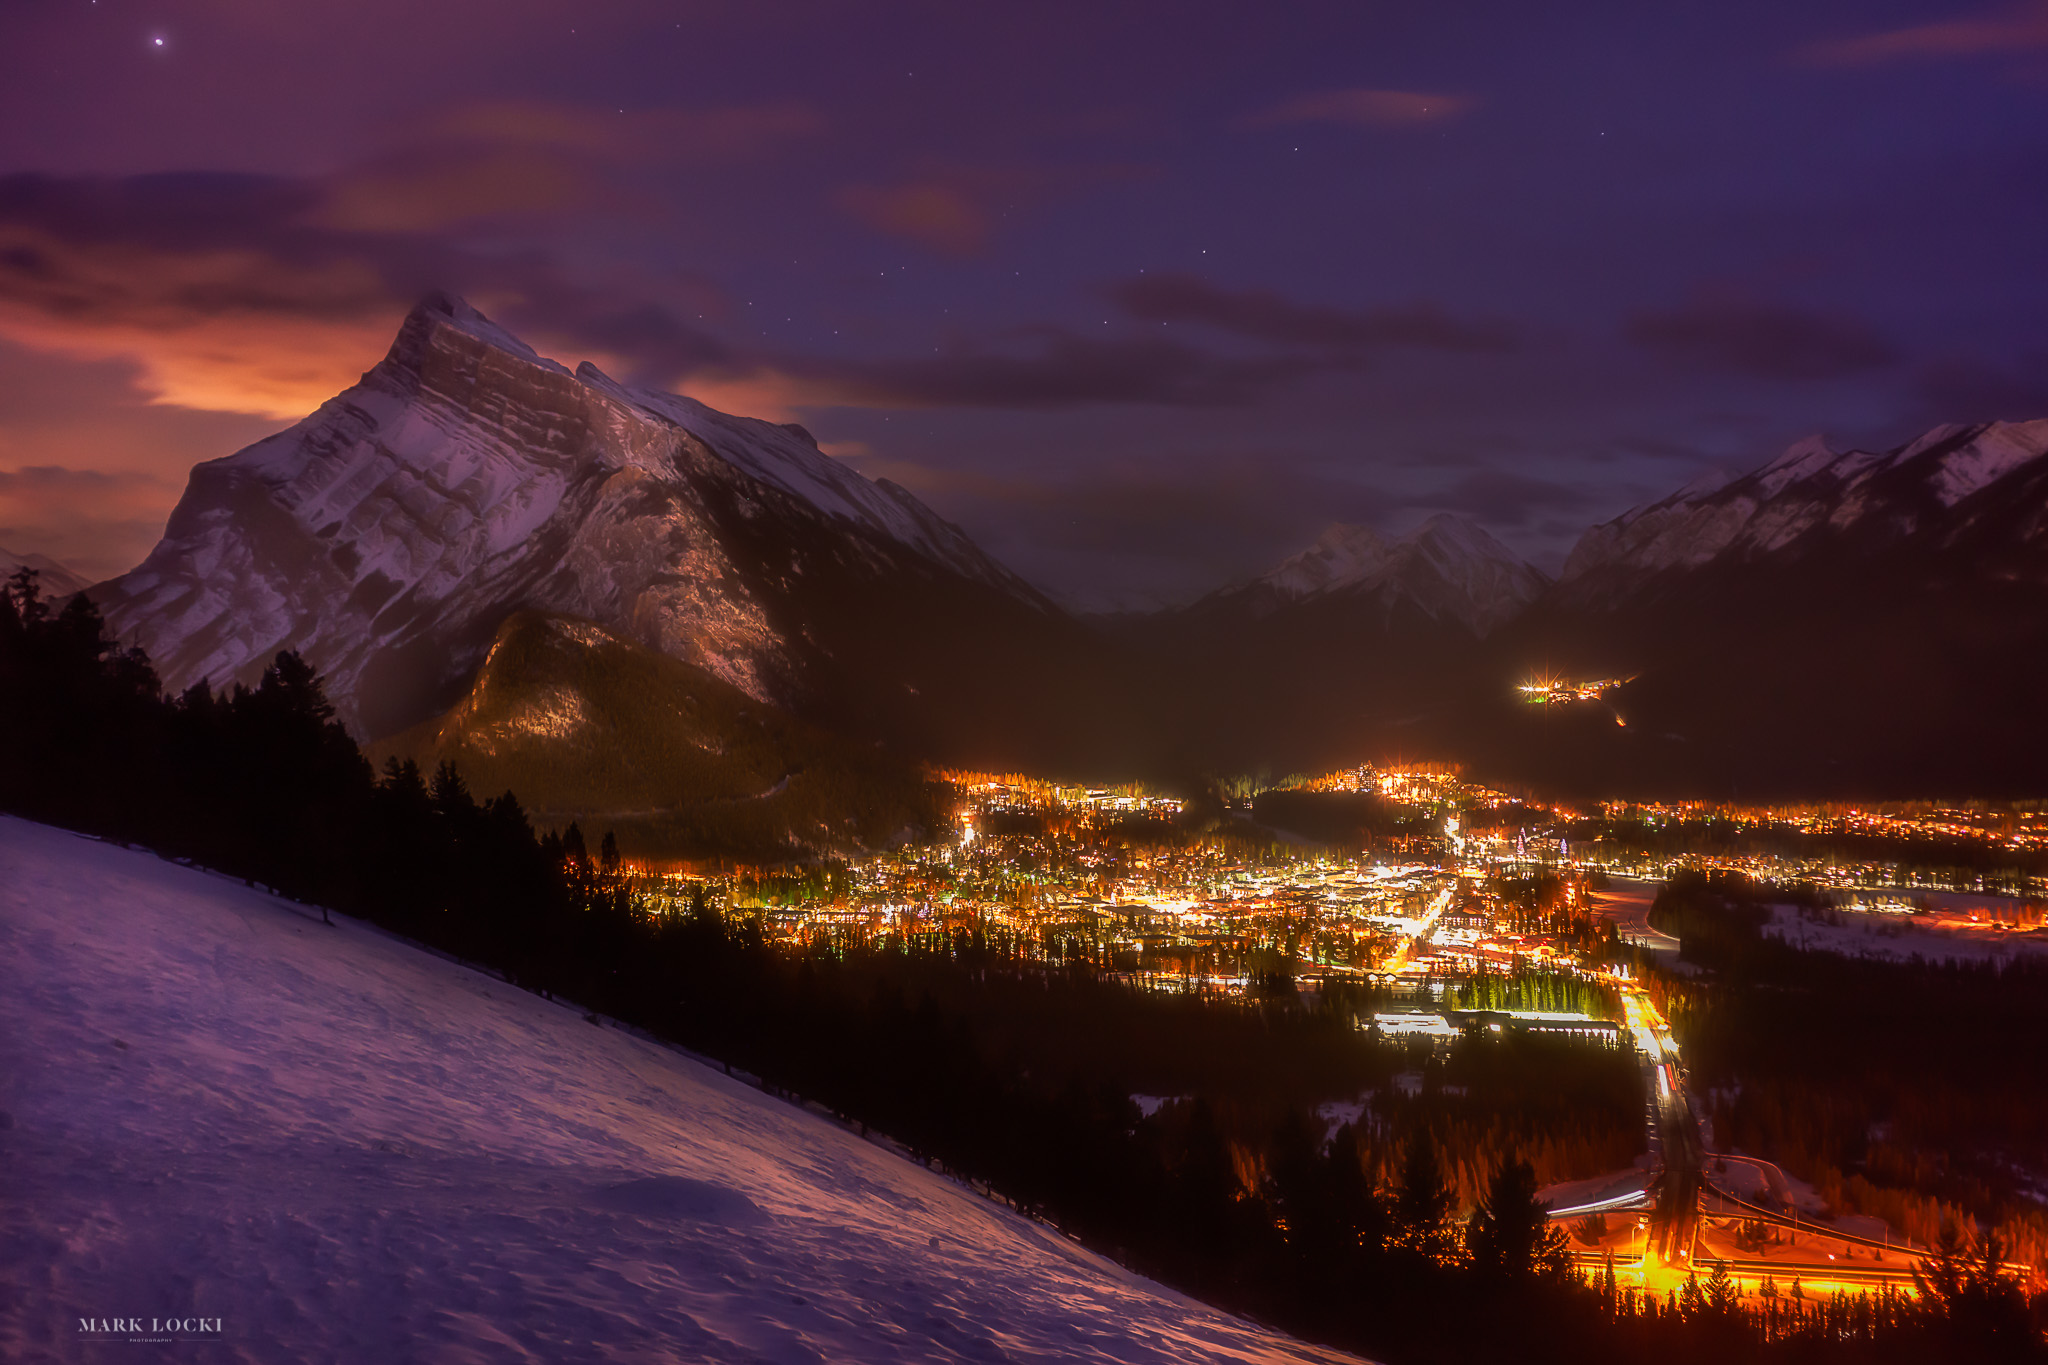 Rundle After Dark - Limit of 30 Matted Prints available